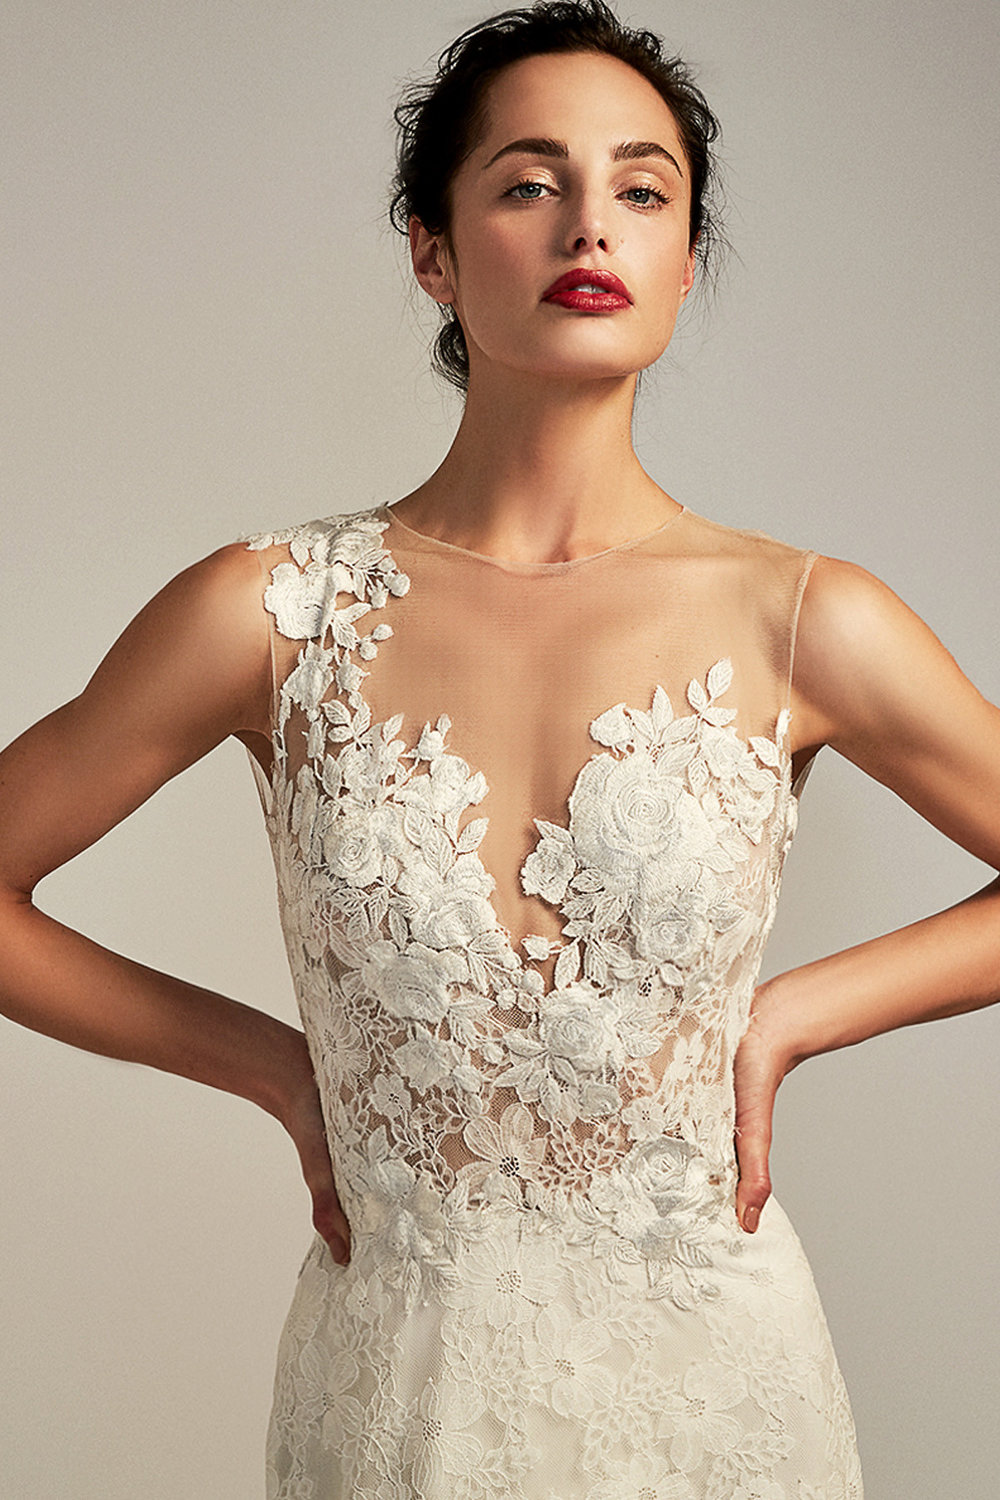 Available at Bride To Be Couture - Inventory# 02057